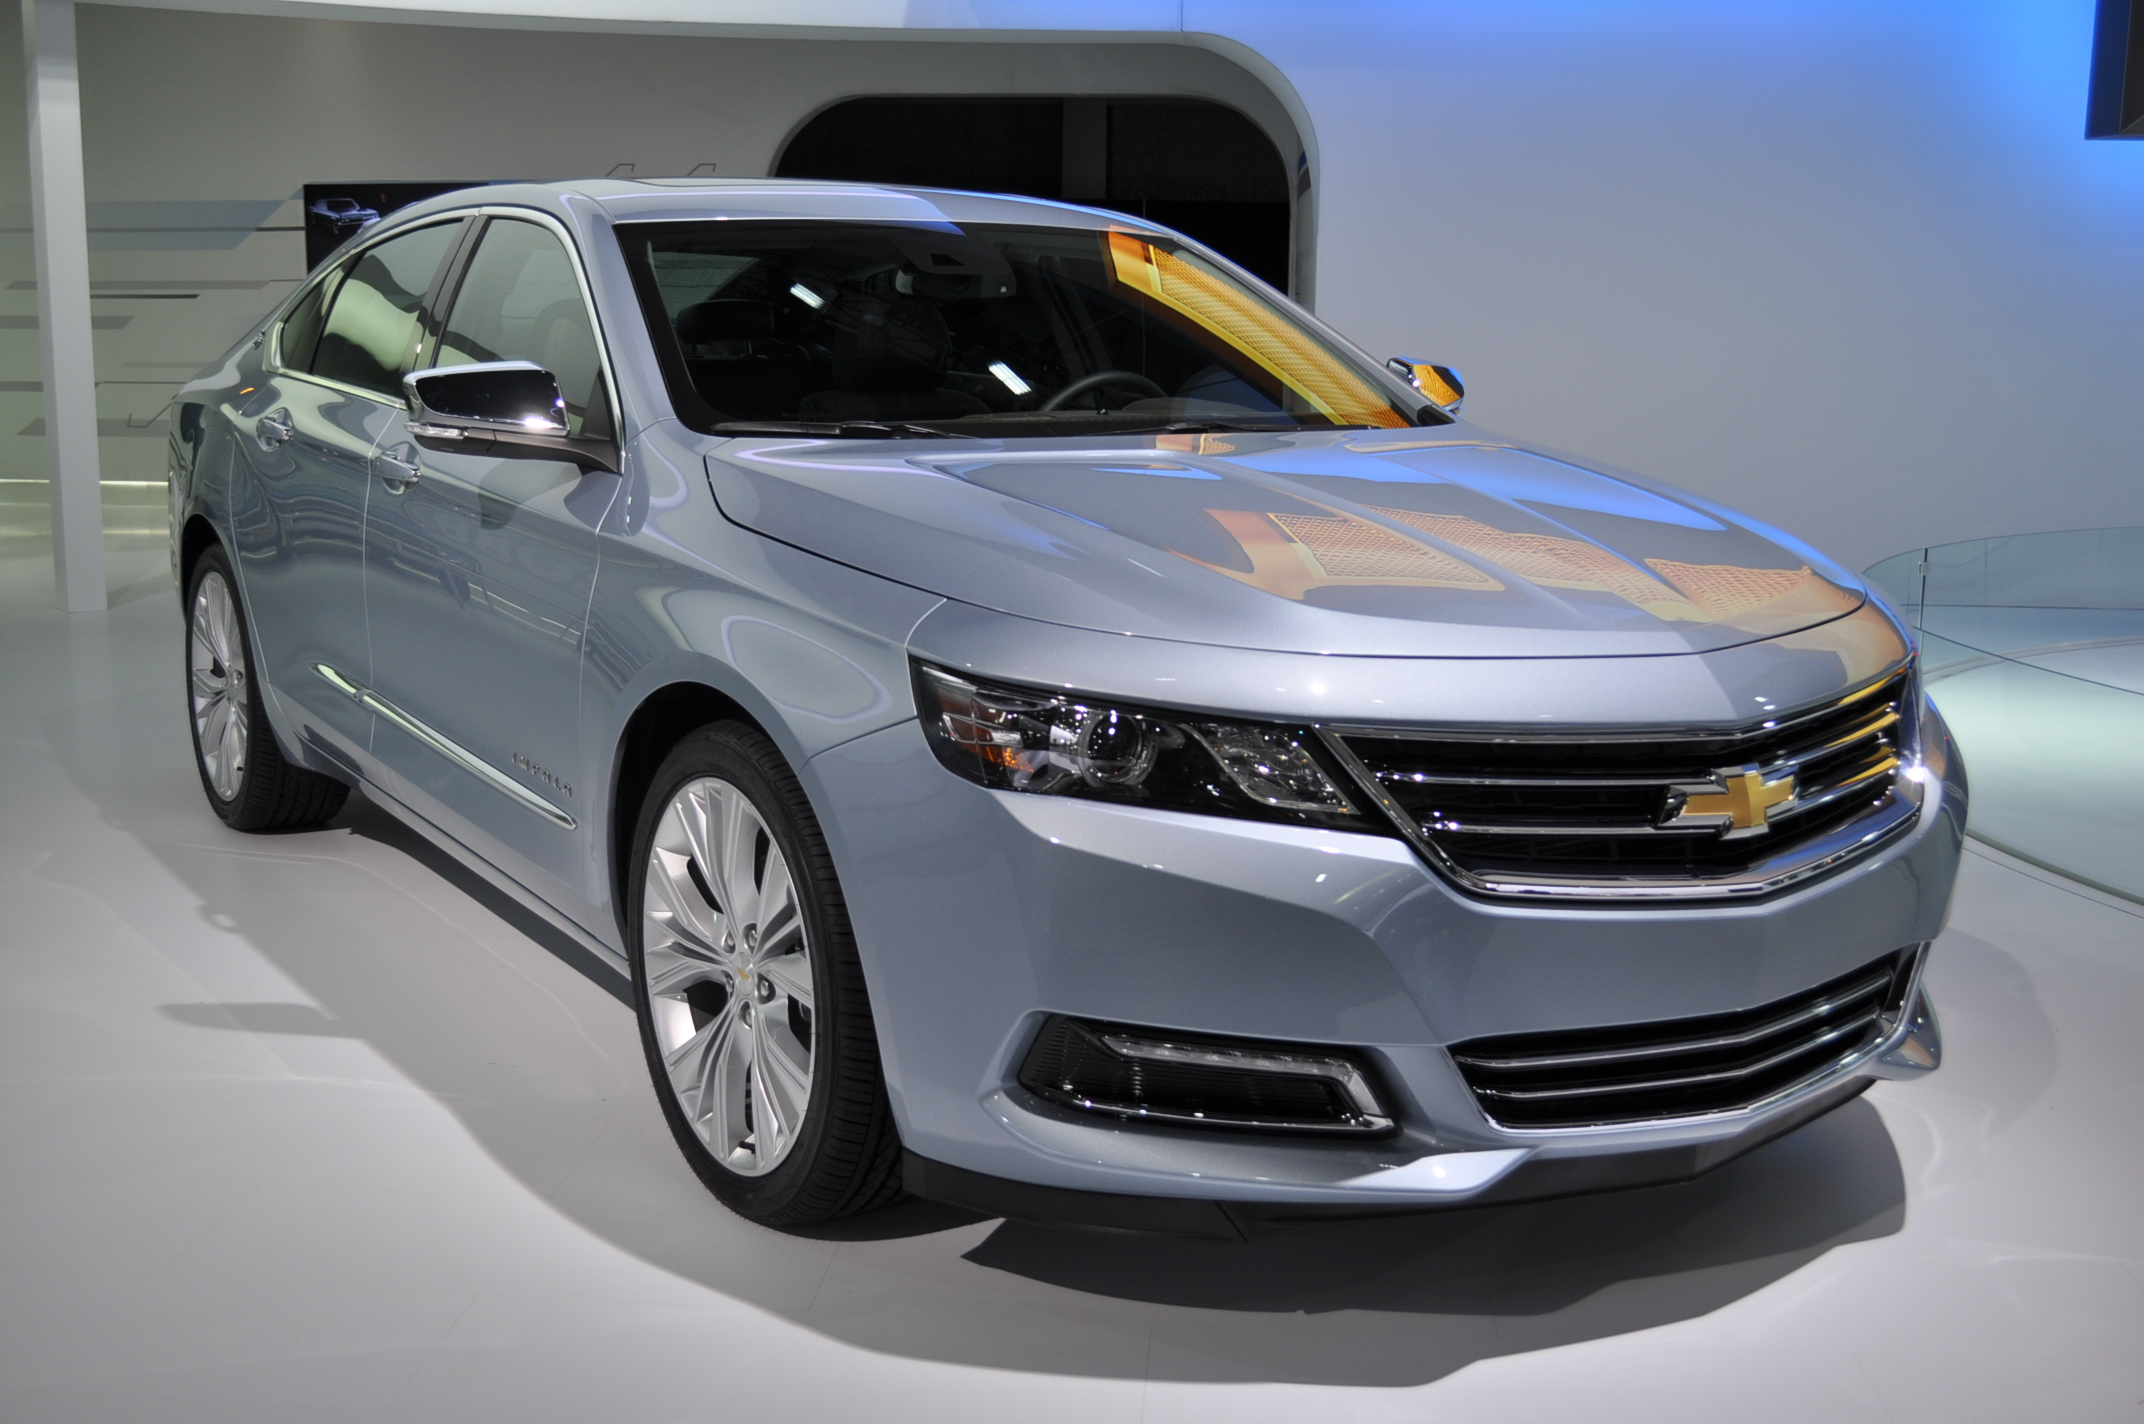 New 2014 Chevrolet Impala Eco Model To Join Cruze, Malibu